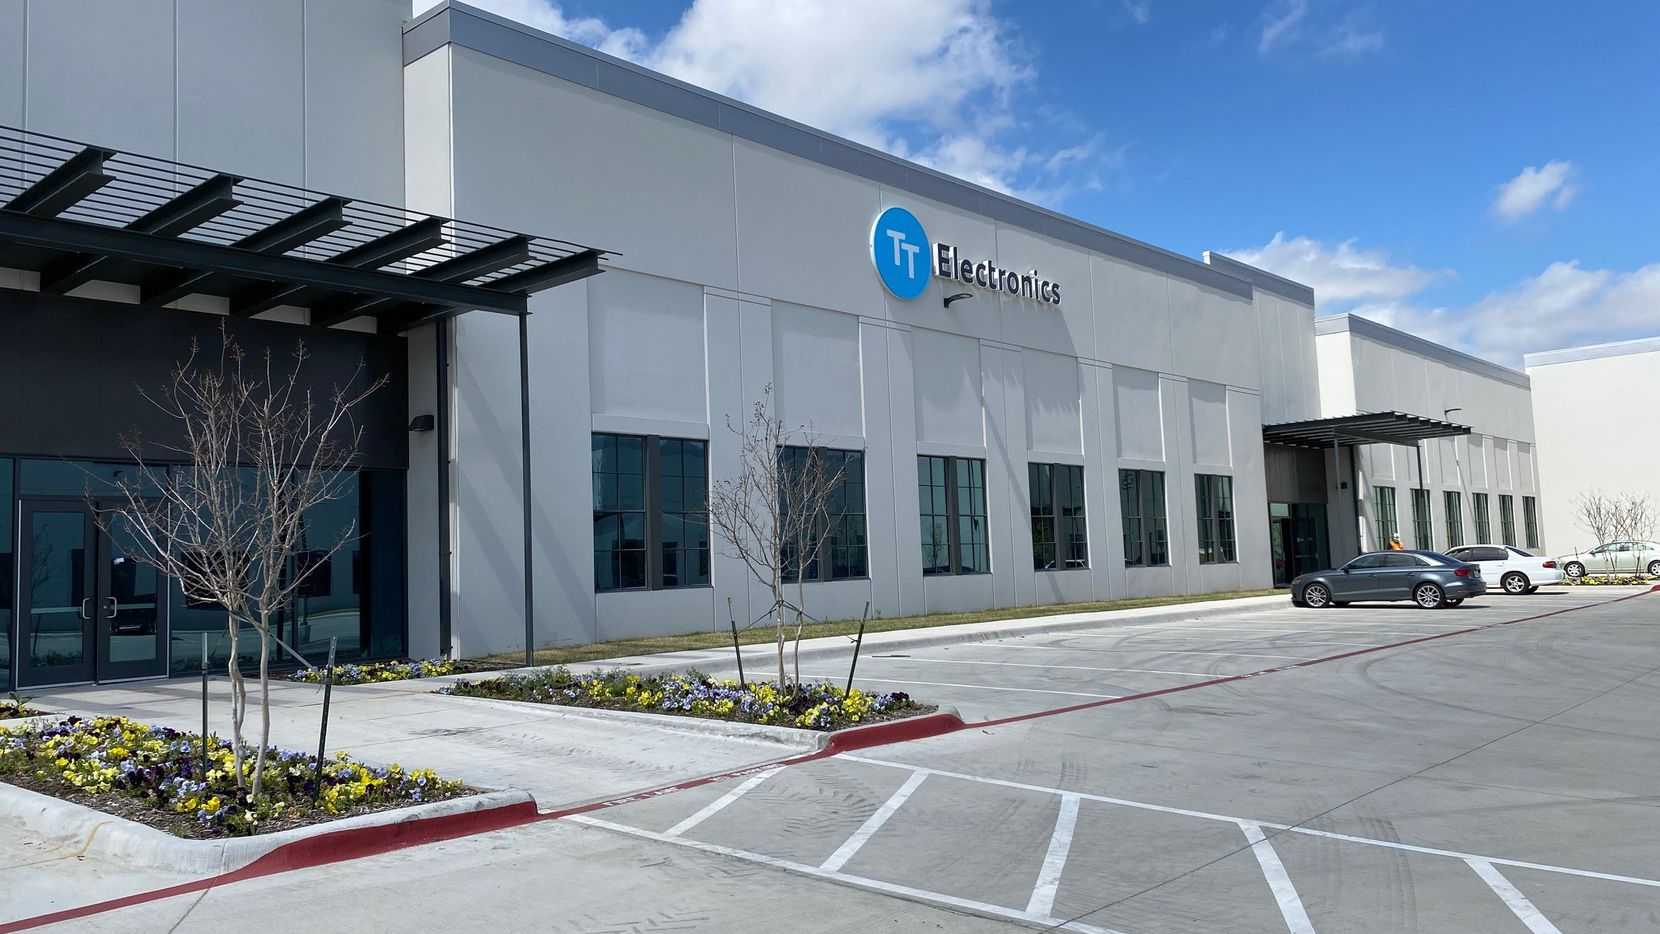 The new office is on Plano Parkway near Jupiter Road.